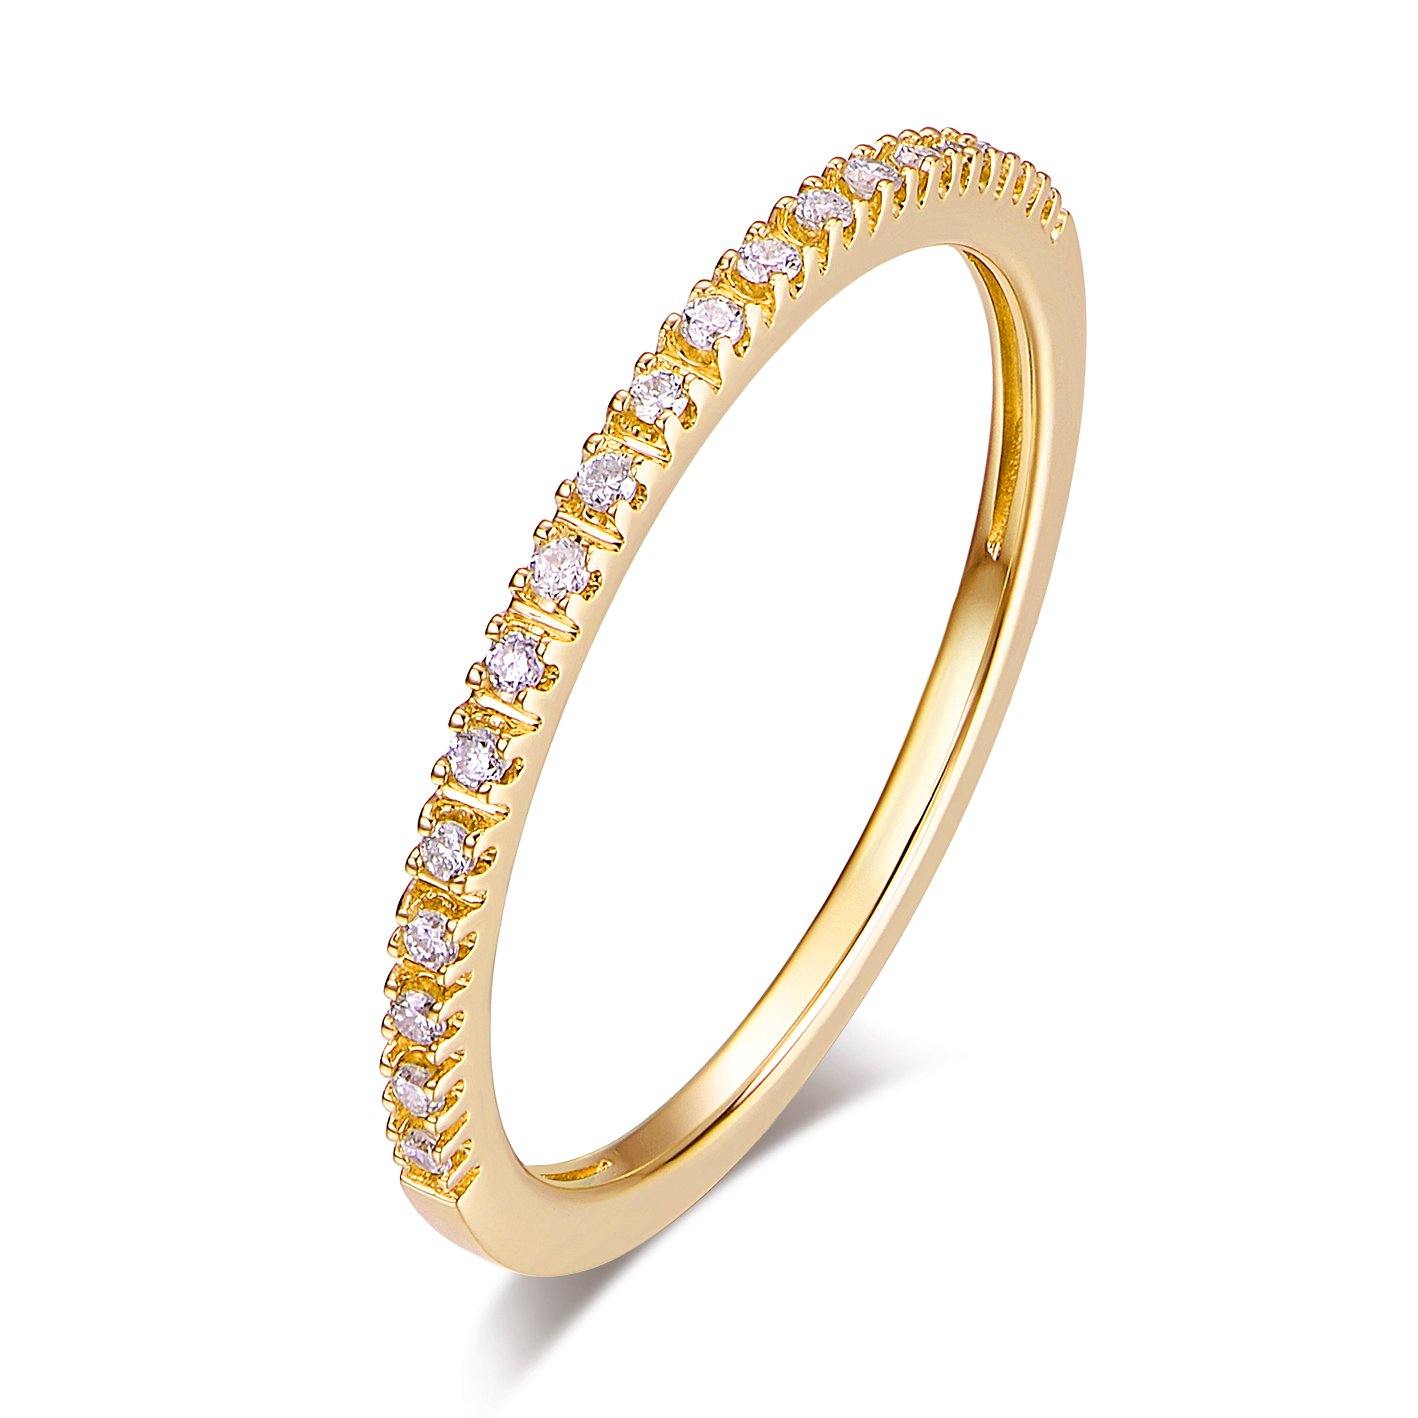 14K Gold Riviera Petite Micropave Diamond Half Eternity Wedding Band Ring for Women, 1.5mm (Yellow-Gold, 4) by Hafeez Center